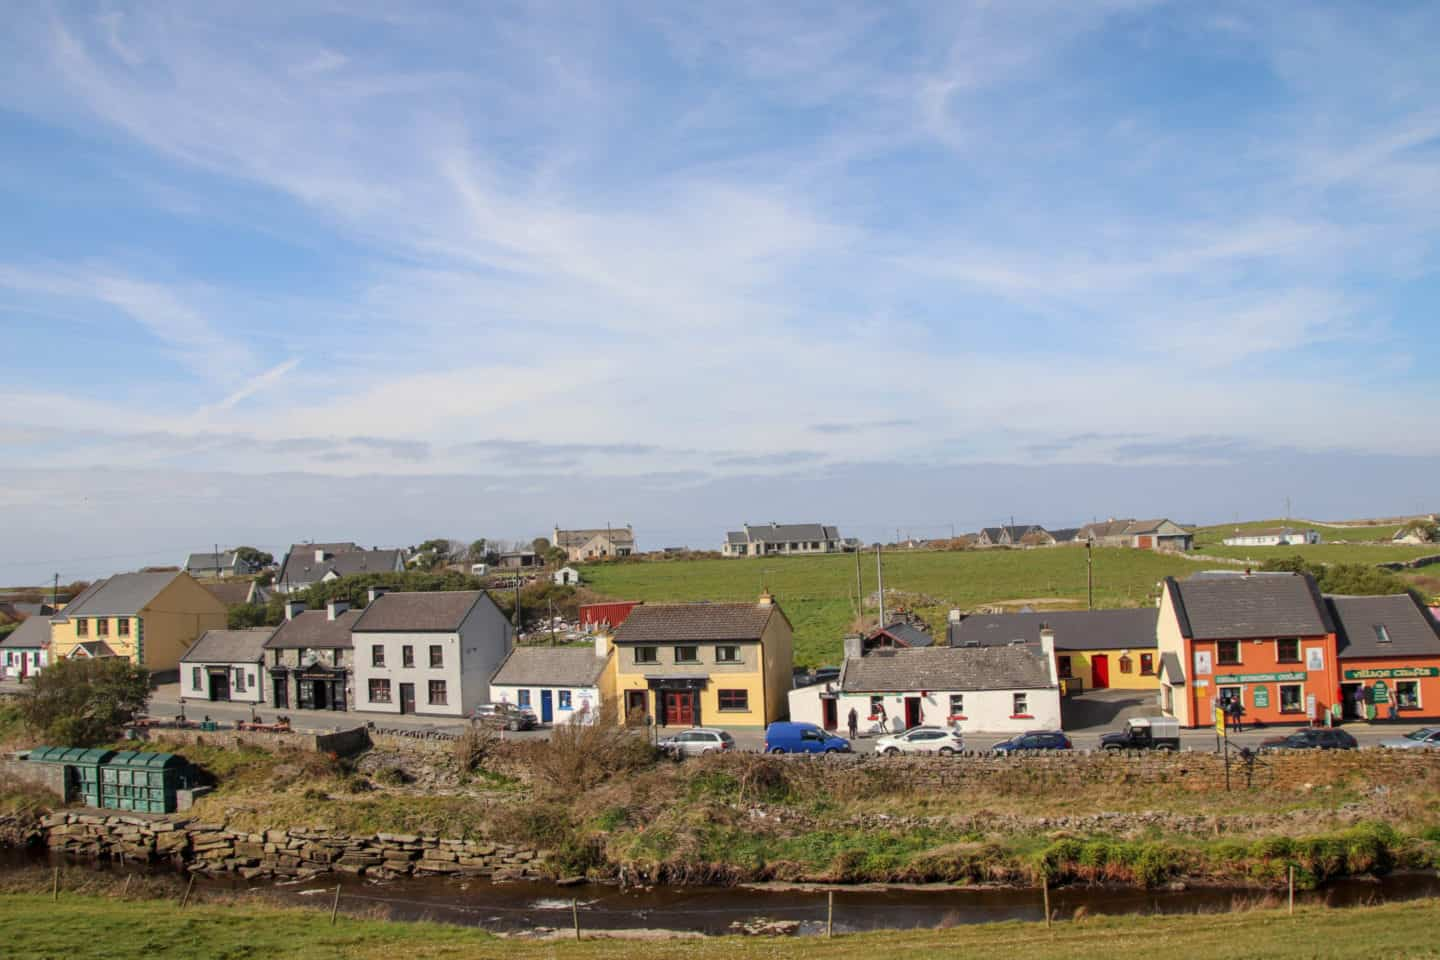 The houses along the main street of Doolin is one of the things to do in Doolin, Ireland